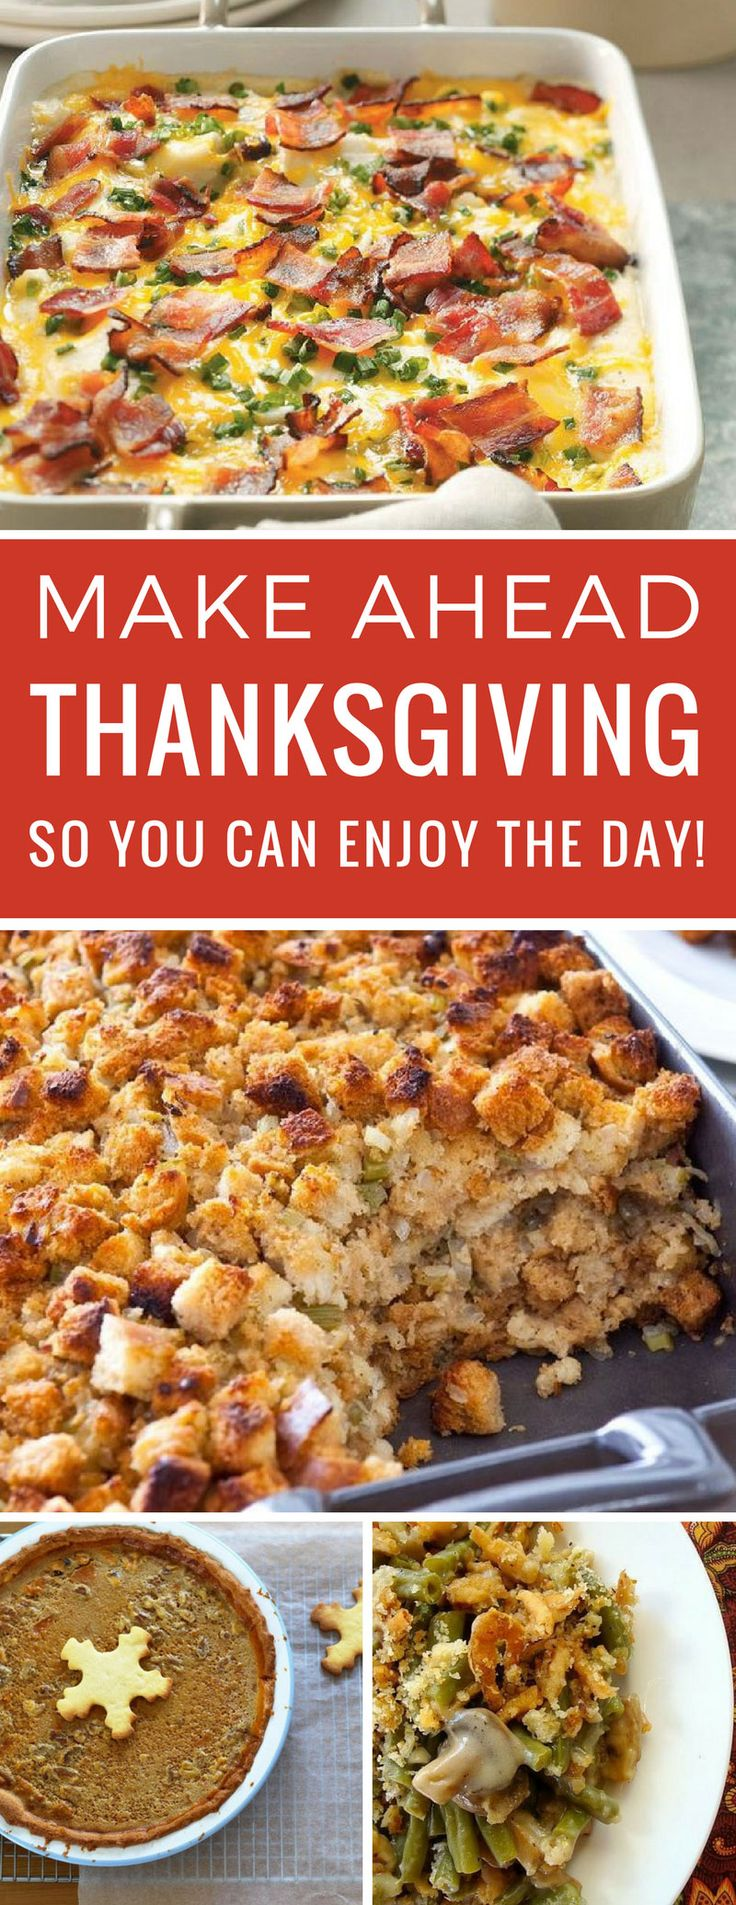 Loving this make ahead Thanksgiving menu - now I won't spend the whole day in the kitchen! Thanks for sharing!